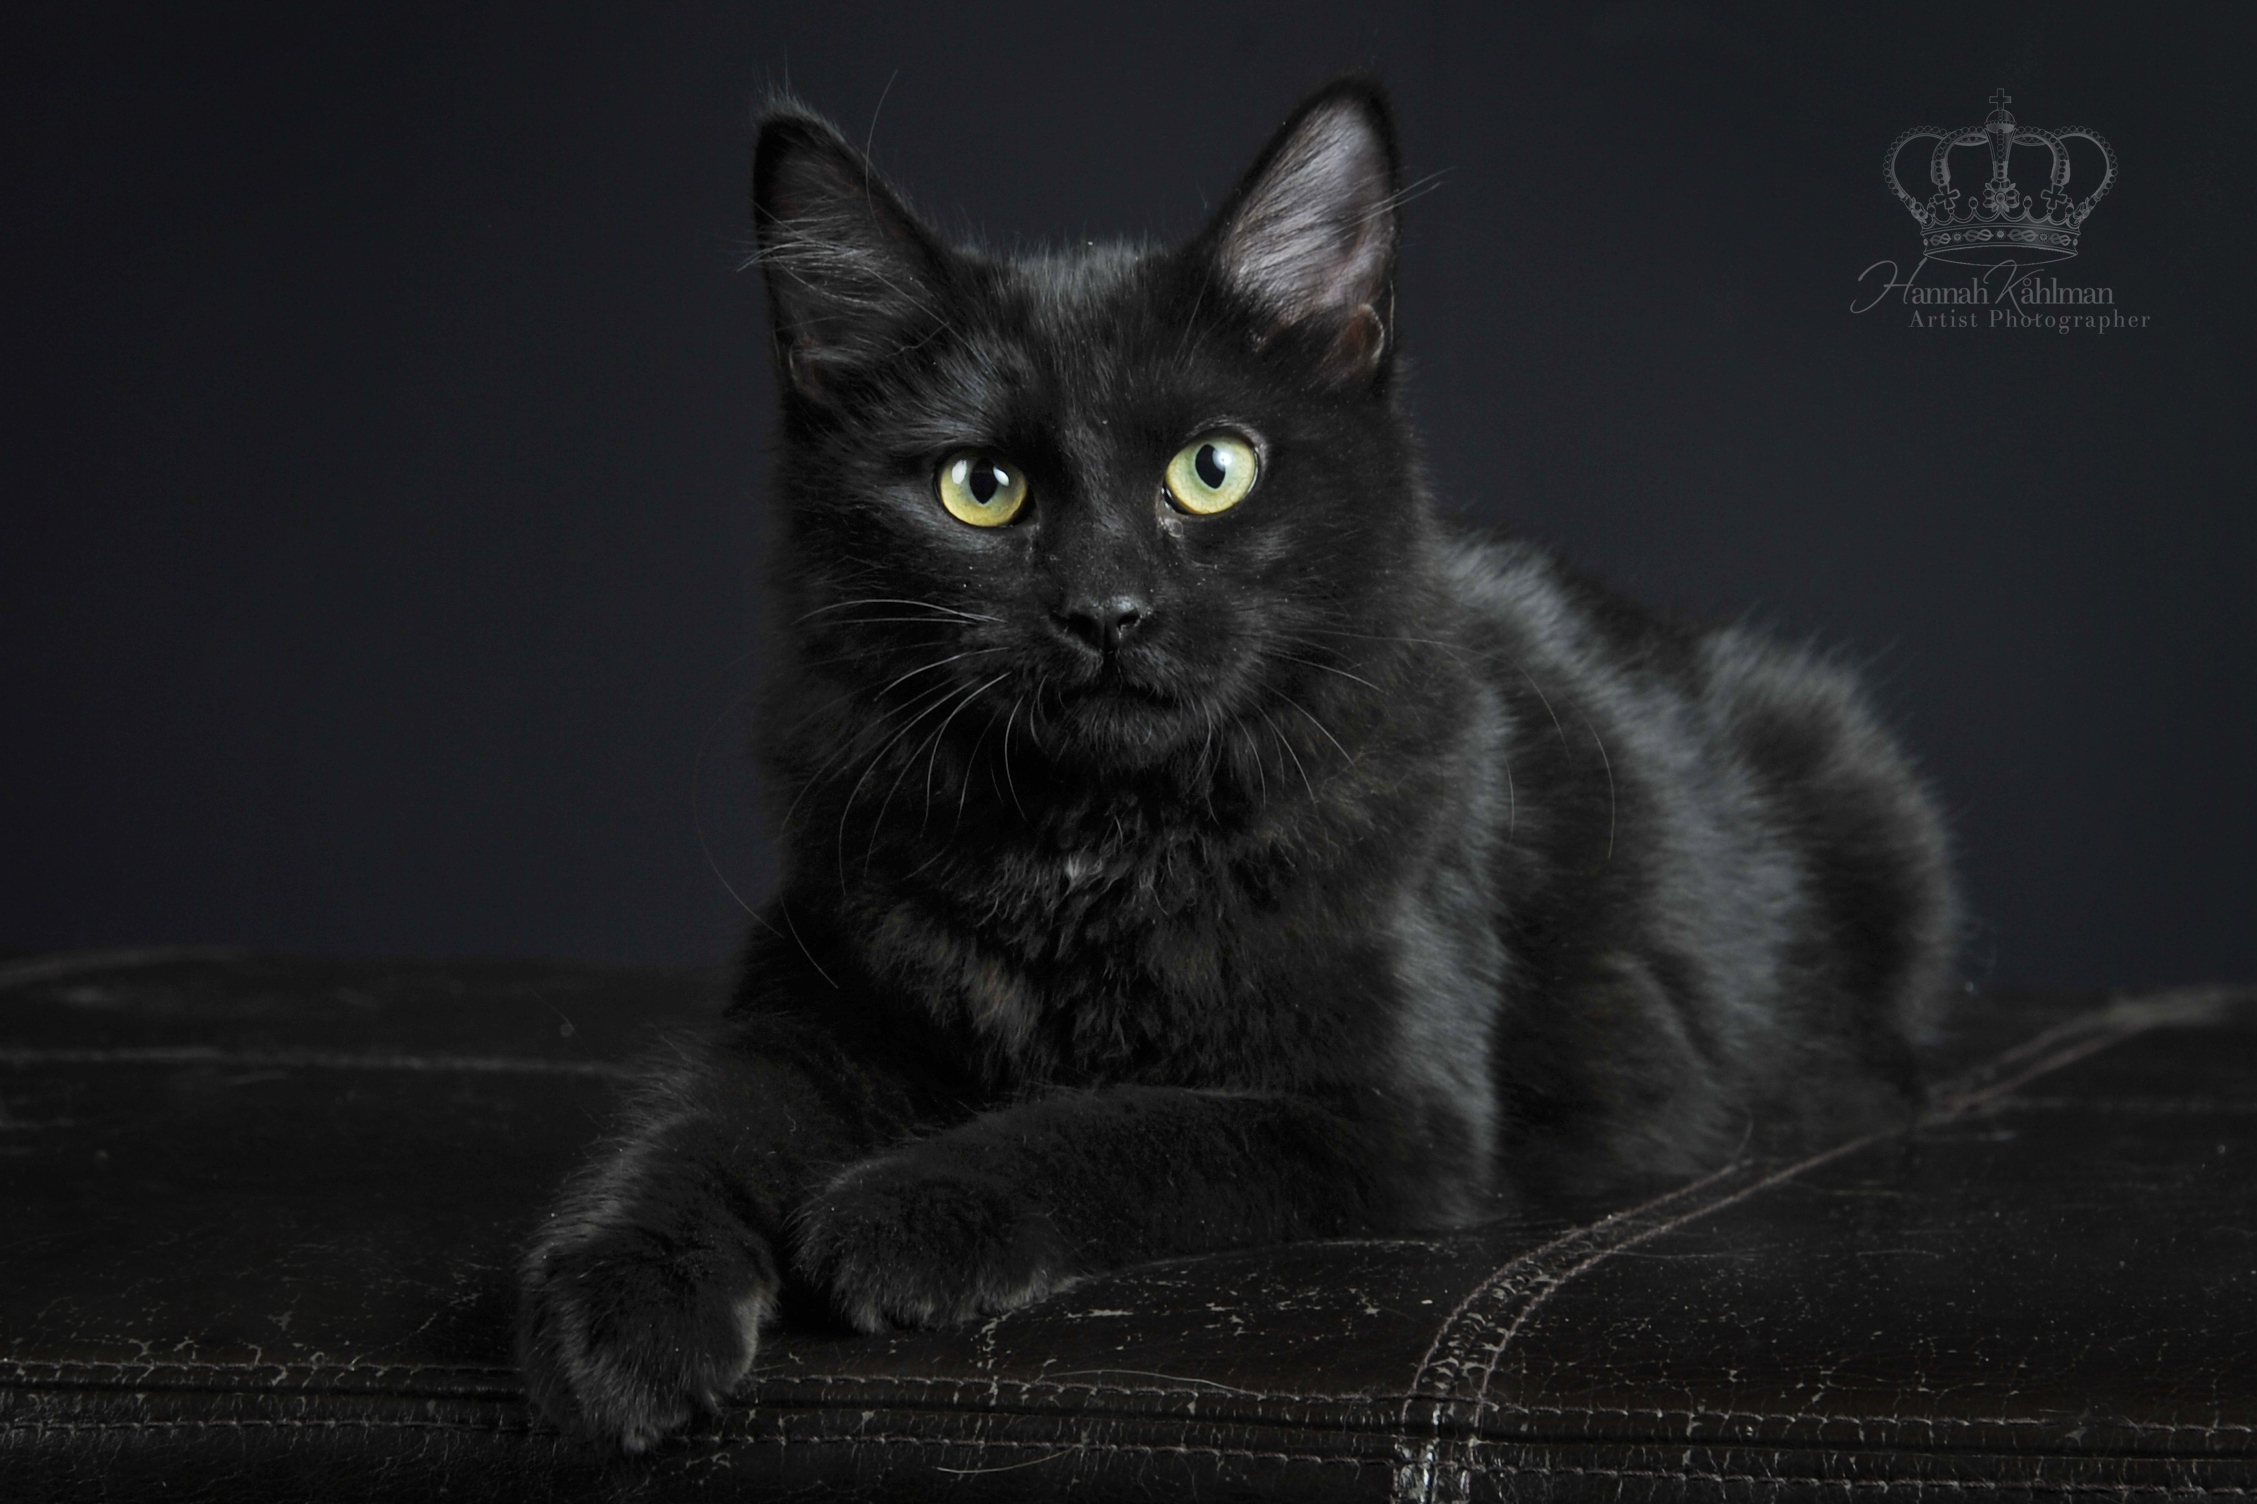 Kitten_cat_on_black_studio_background_fi